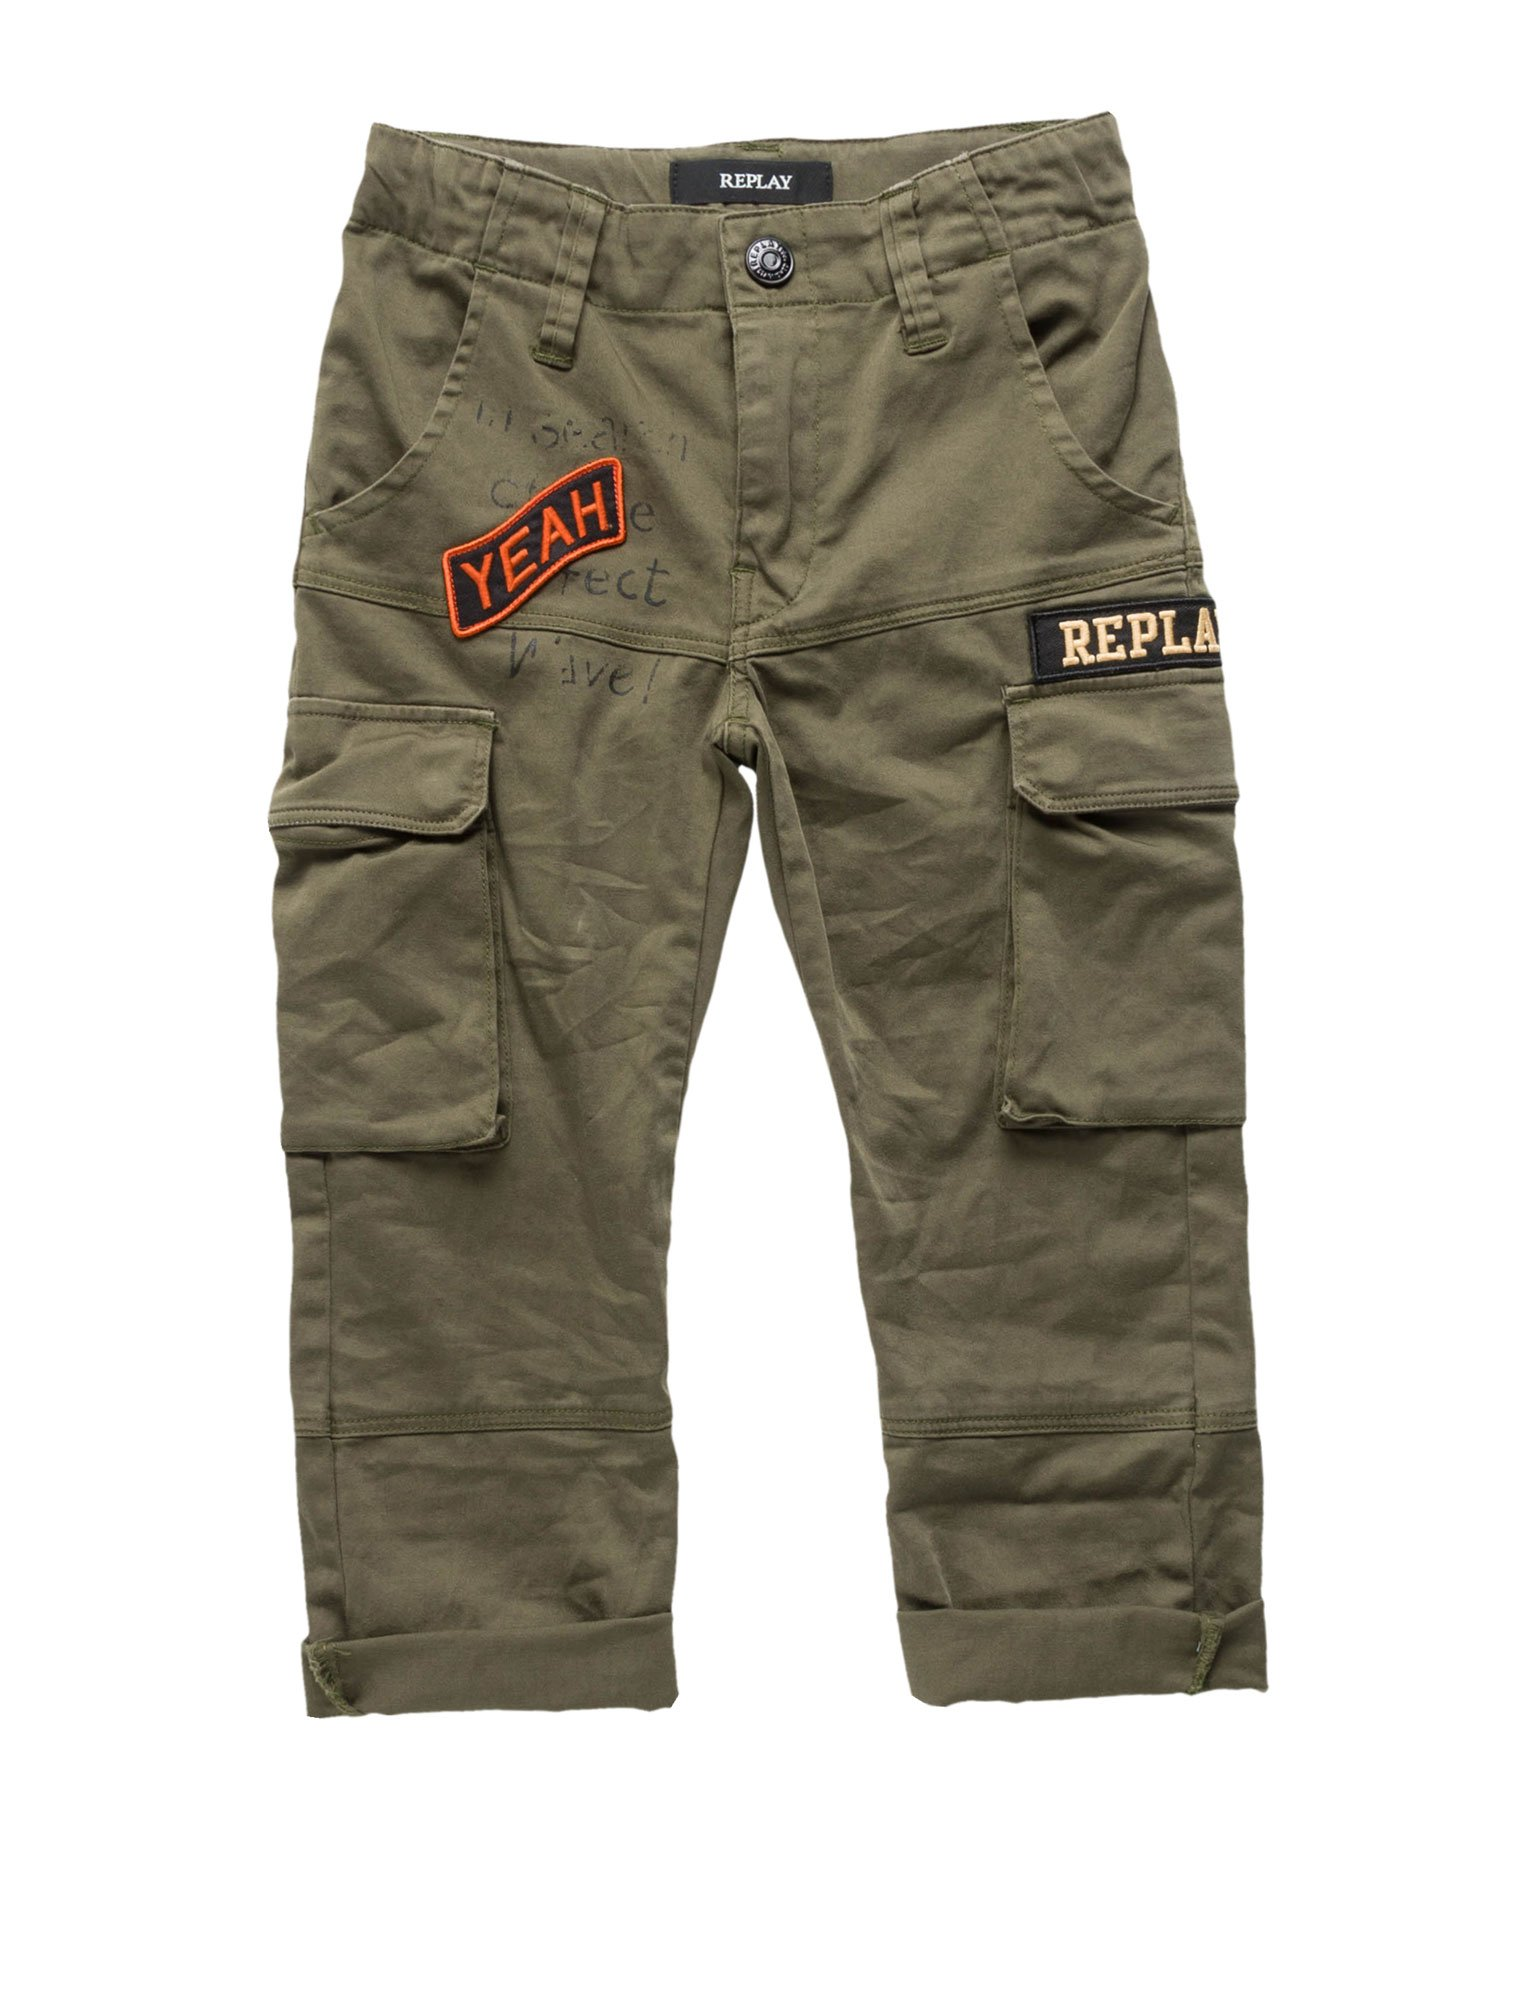 Replay Slim Fit Satin Boy's Cargo Pants In Green In Size 8 Years Green